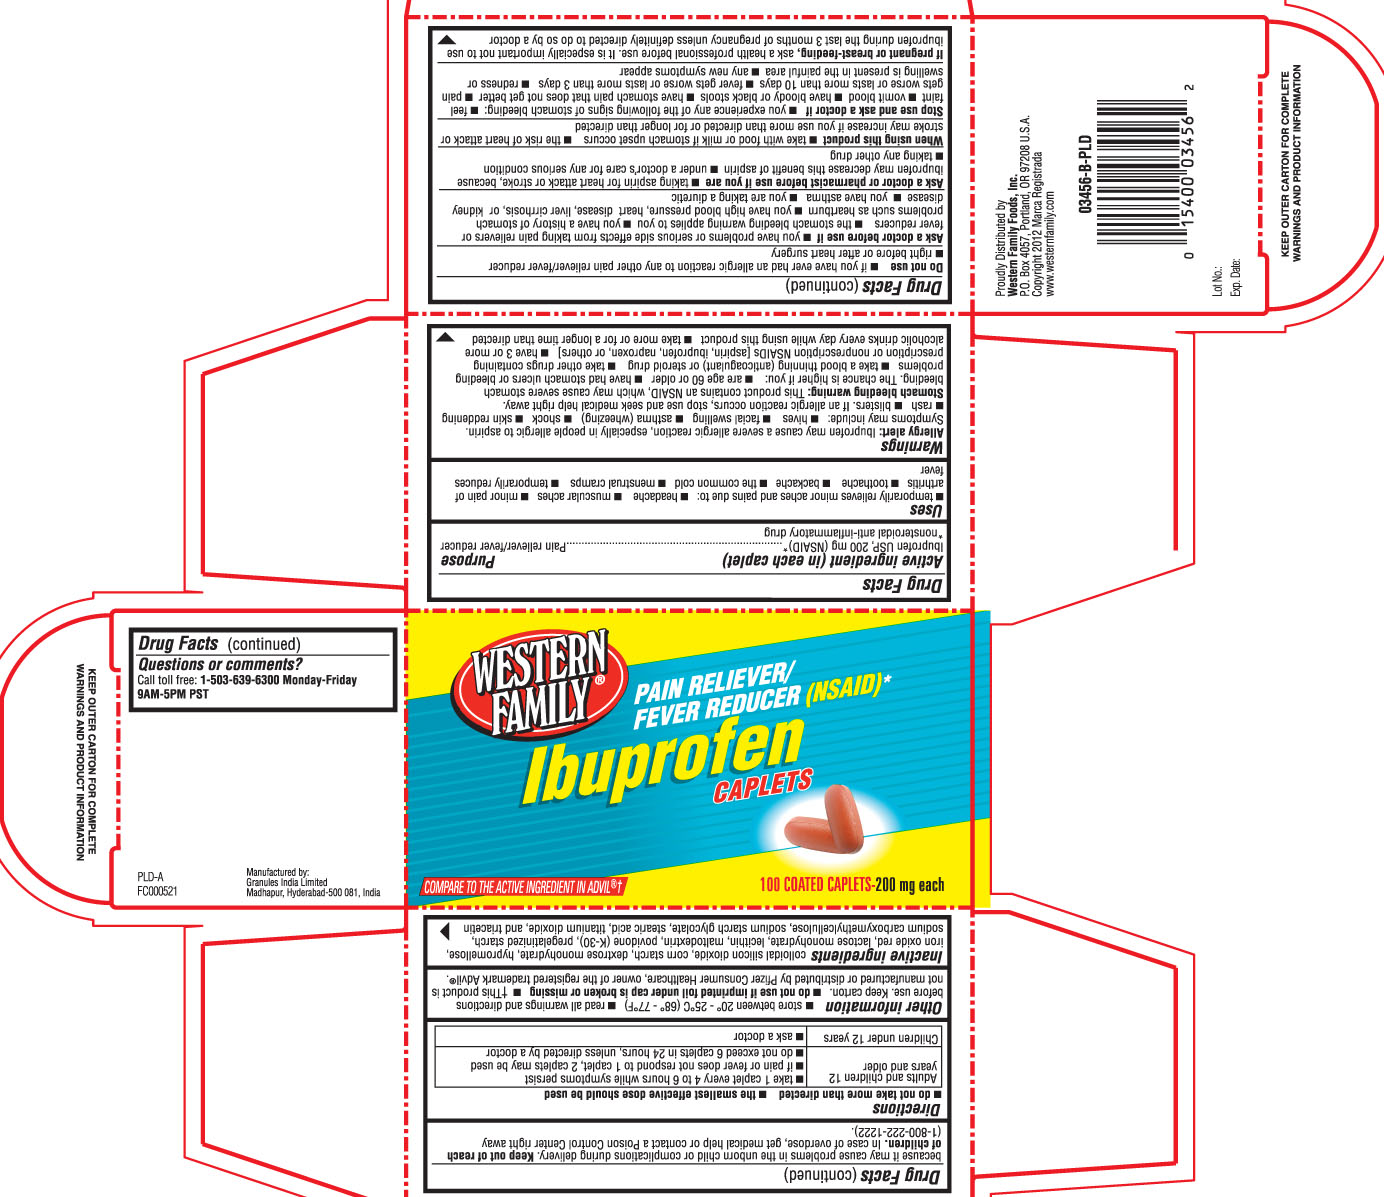 Ibuprofen Tablet [Western Family Foods, Inc.]